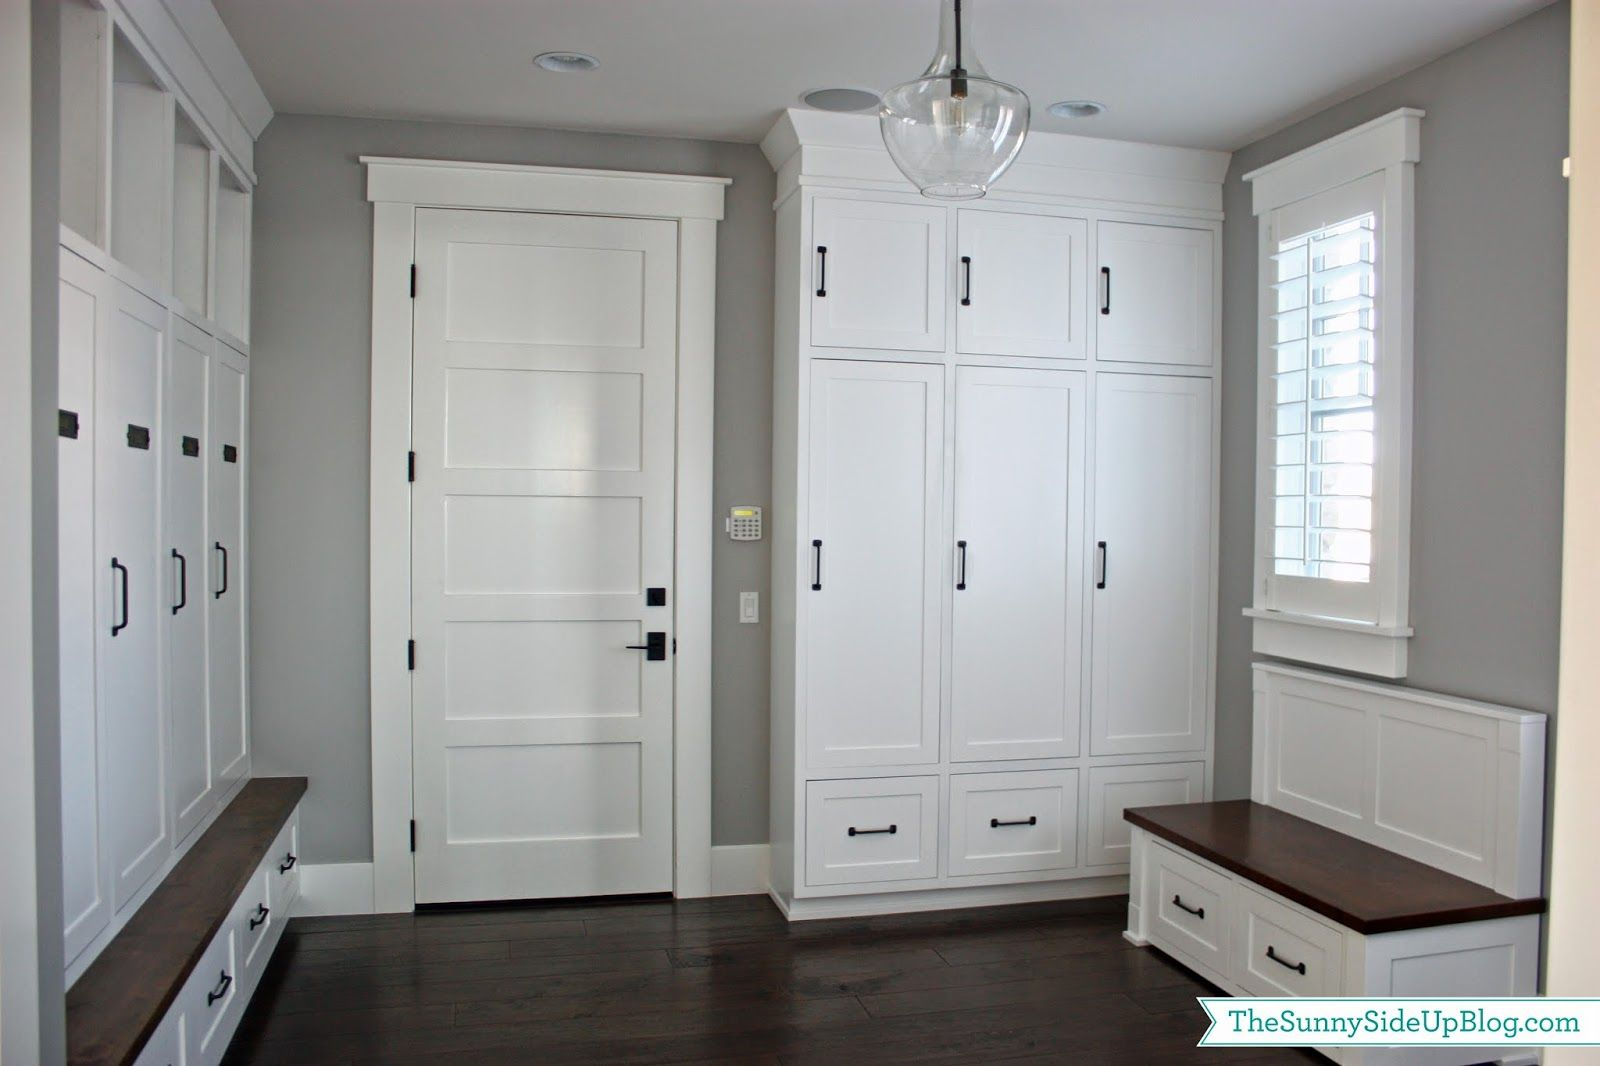 mudroom.jpg (1600×1066) | Home | Pinterest | Mudroom, White cab and ...